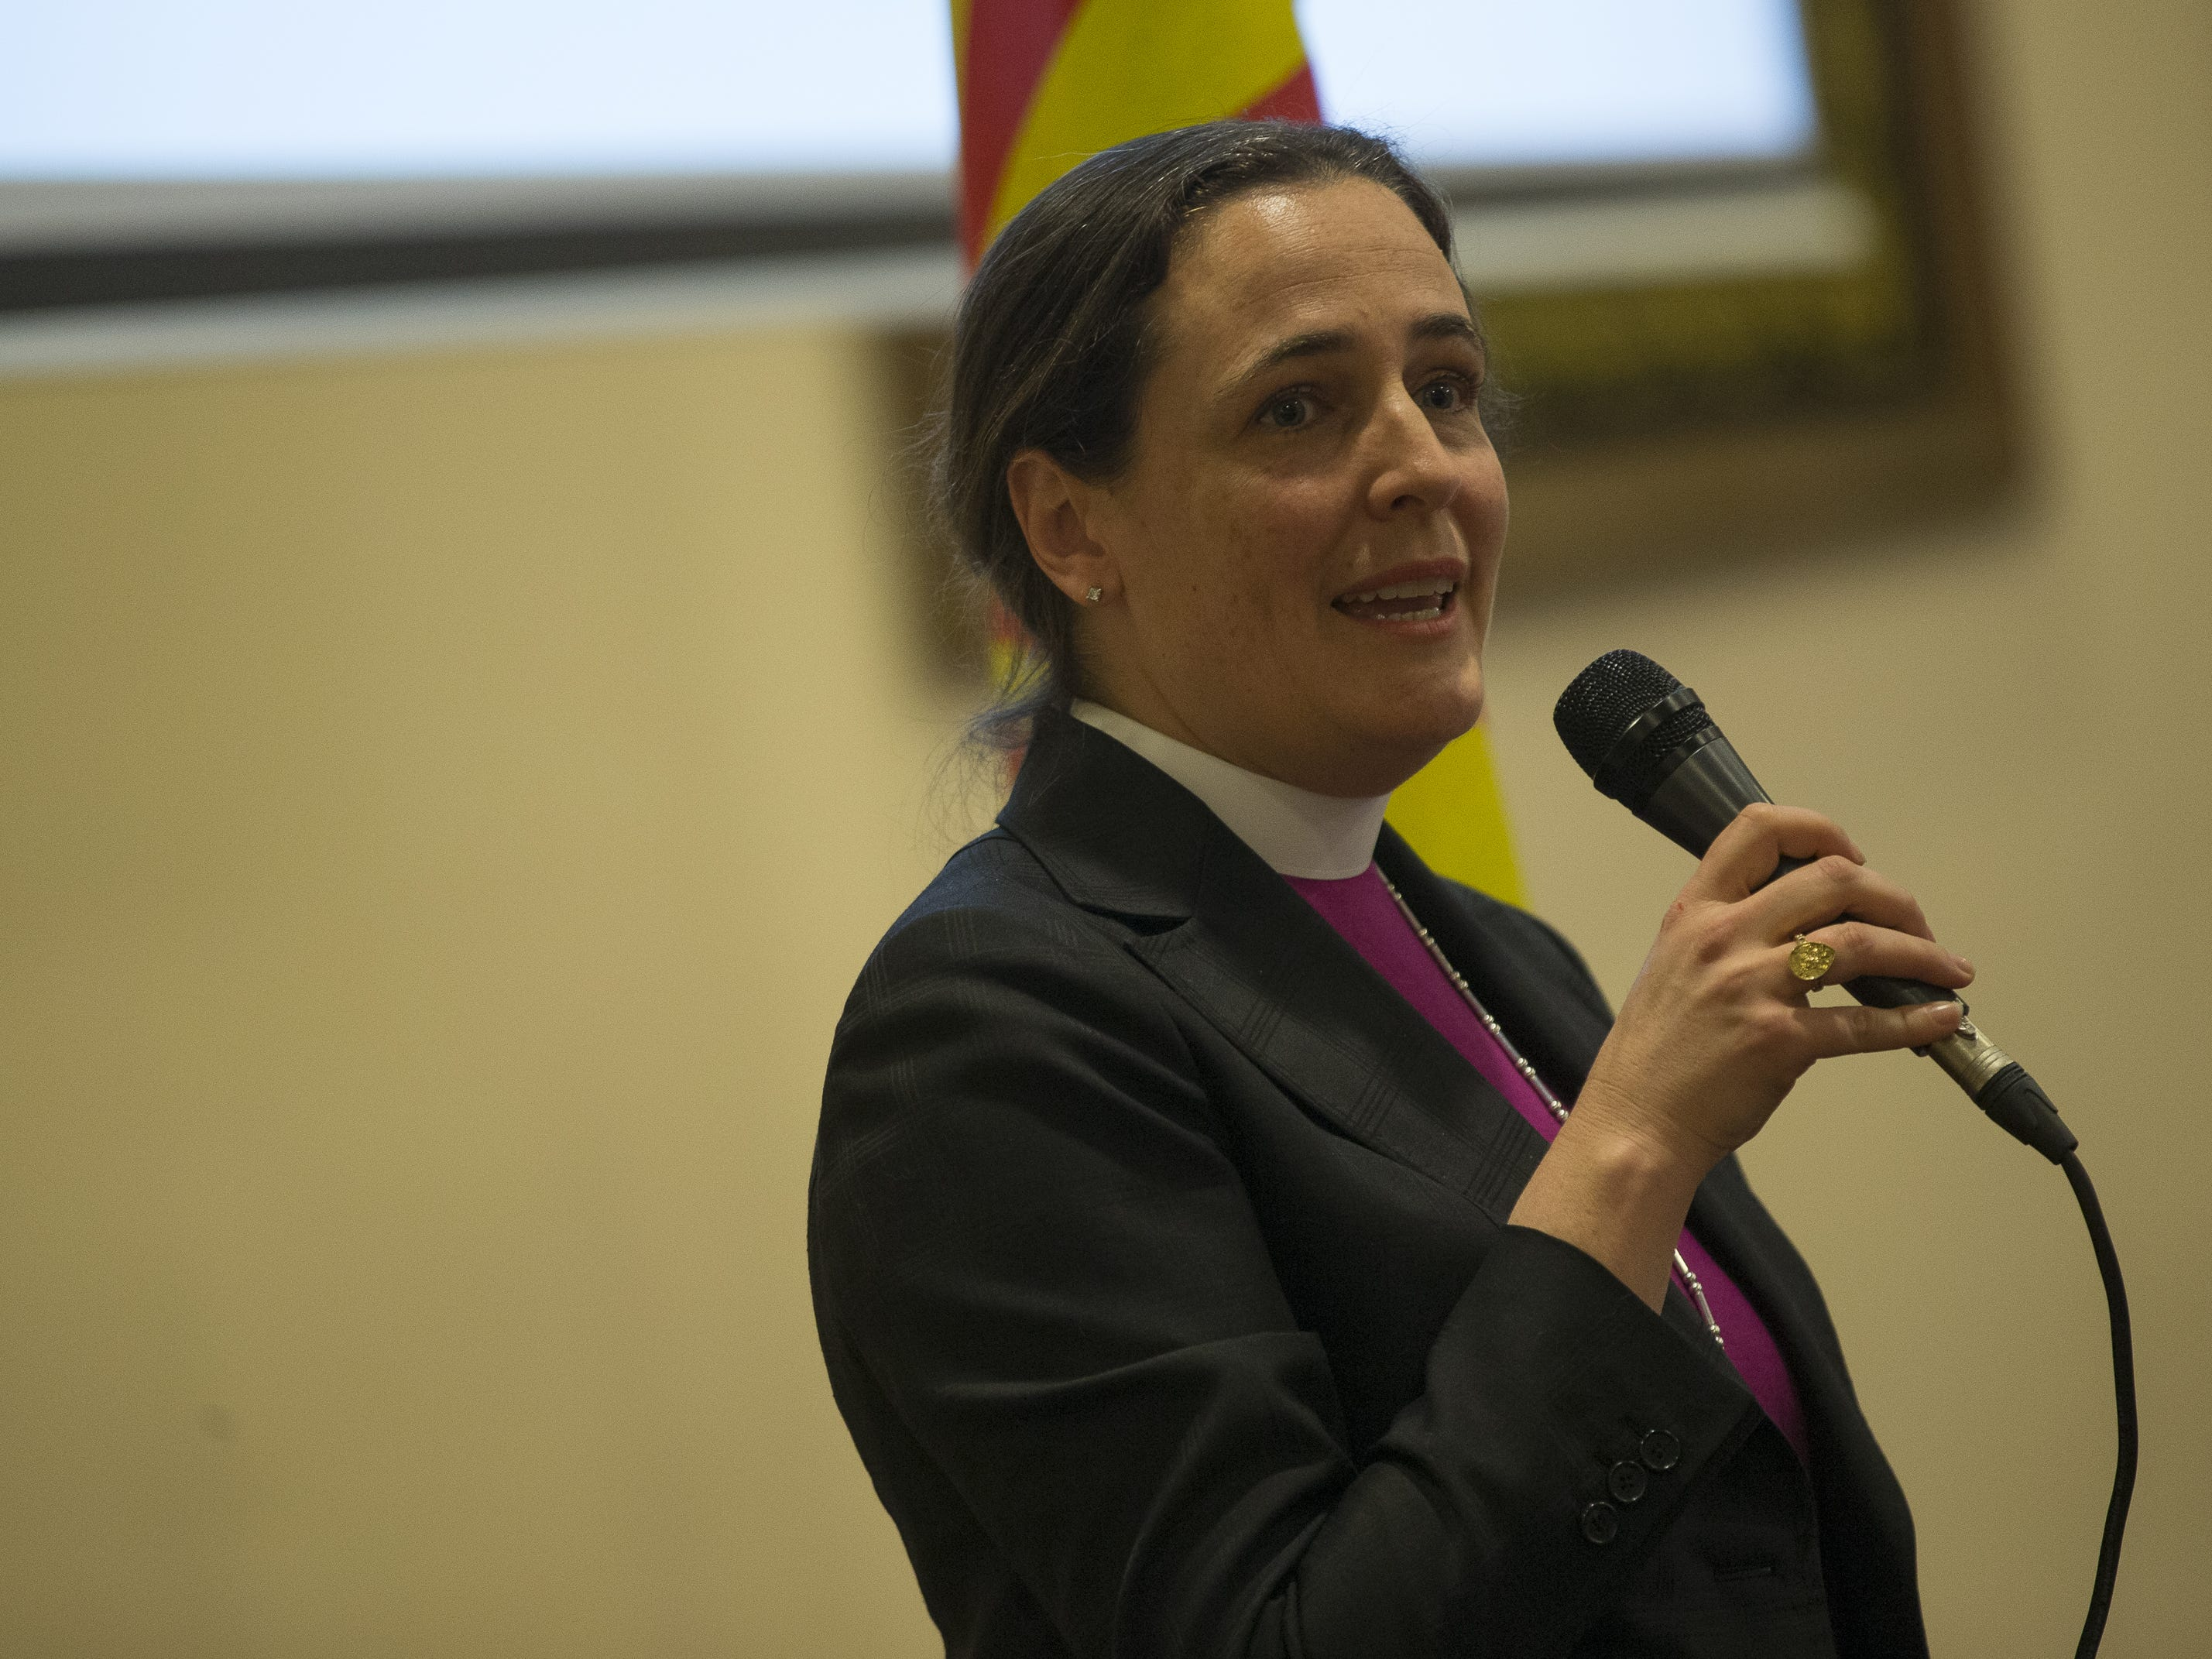 Bishop Jennifer Reddall, of the Episcopal Diocese of Arizona, speaks at a vigil held  at the Islamic Center of Northeast Valley in Scottsdale, Ariz., on Sunday, March 17, 2019, in memory of the Christchurch New Zealand shooting victims.